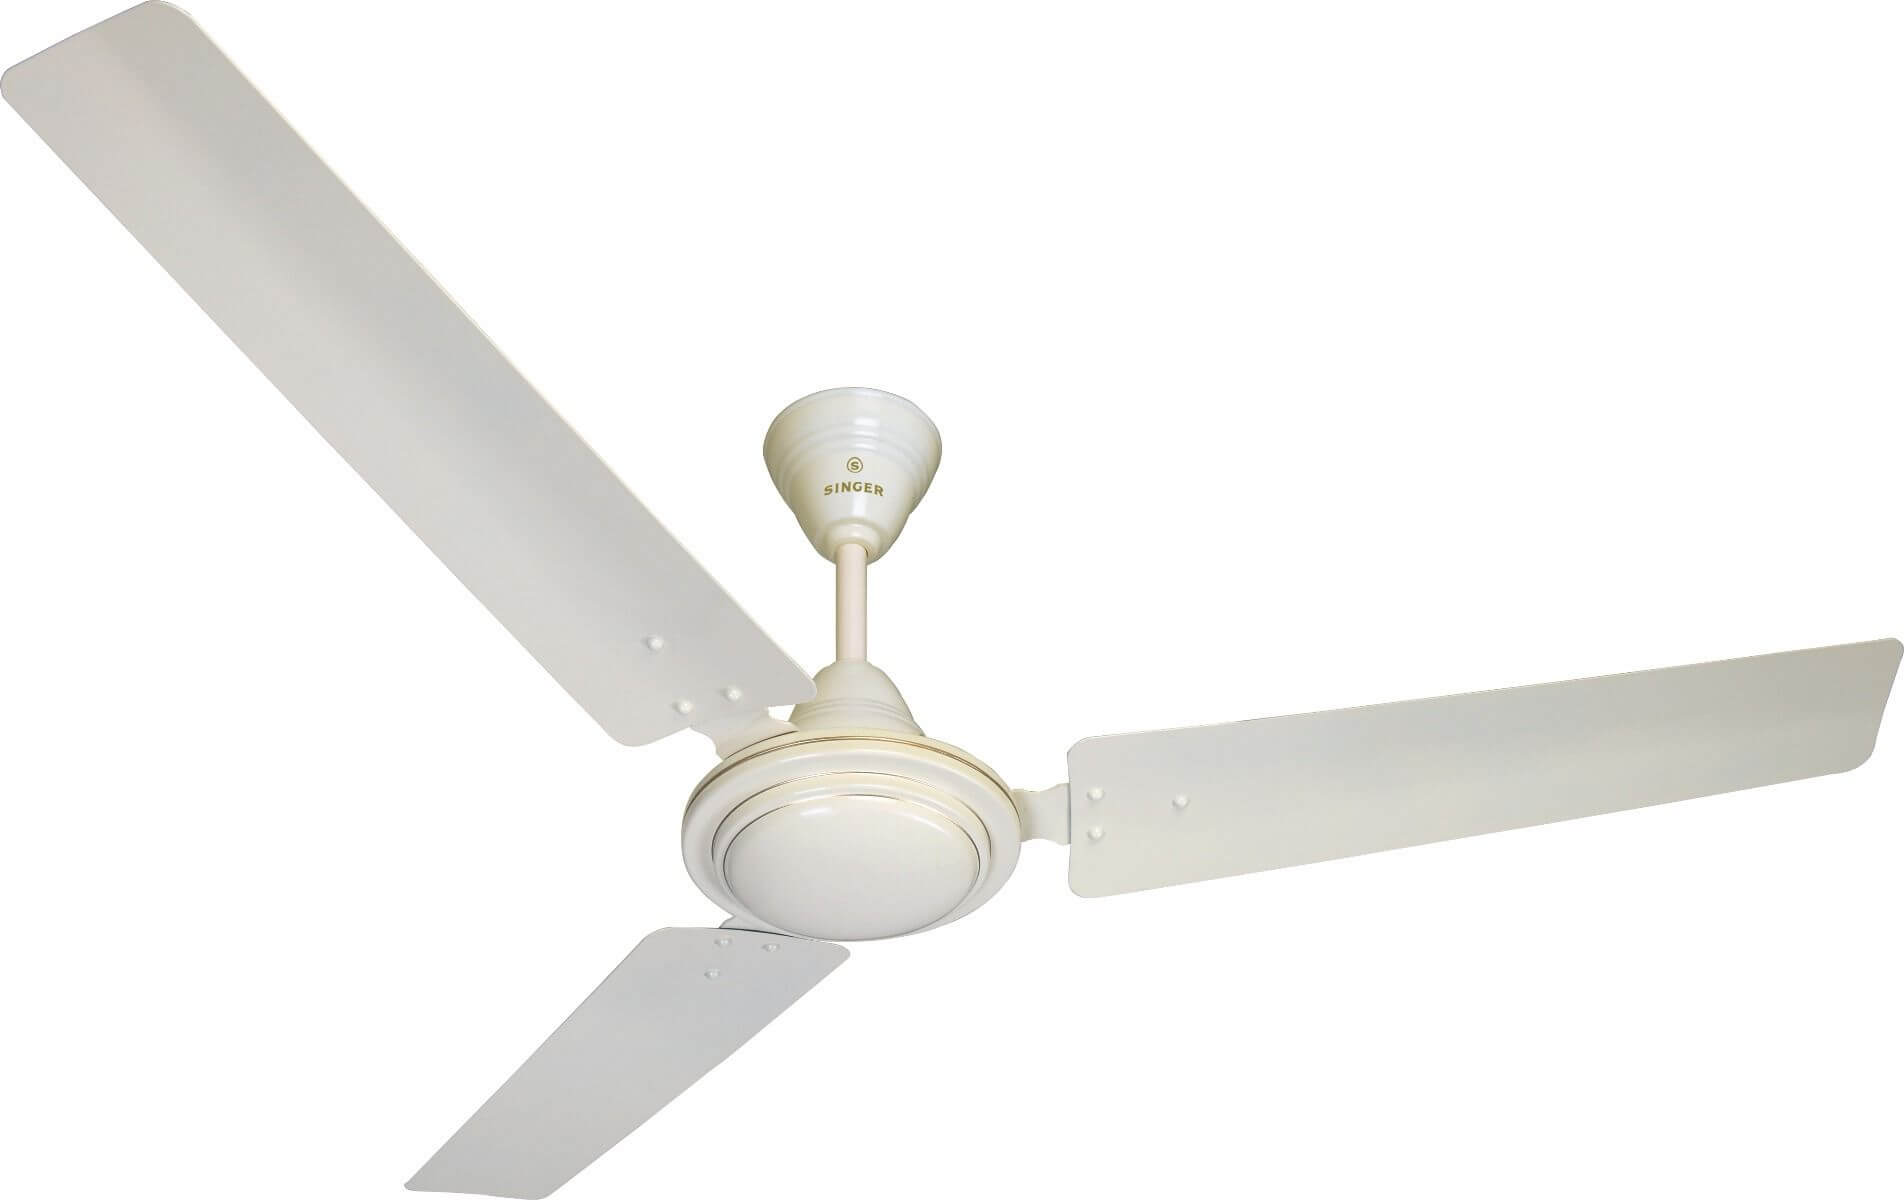 Singer Aerostar Efficient Ceiling Fan Ivory